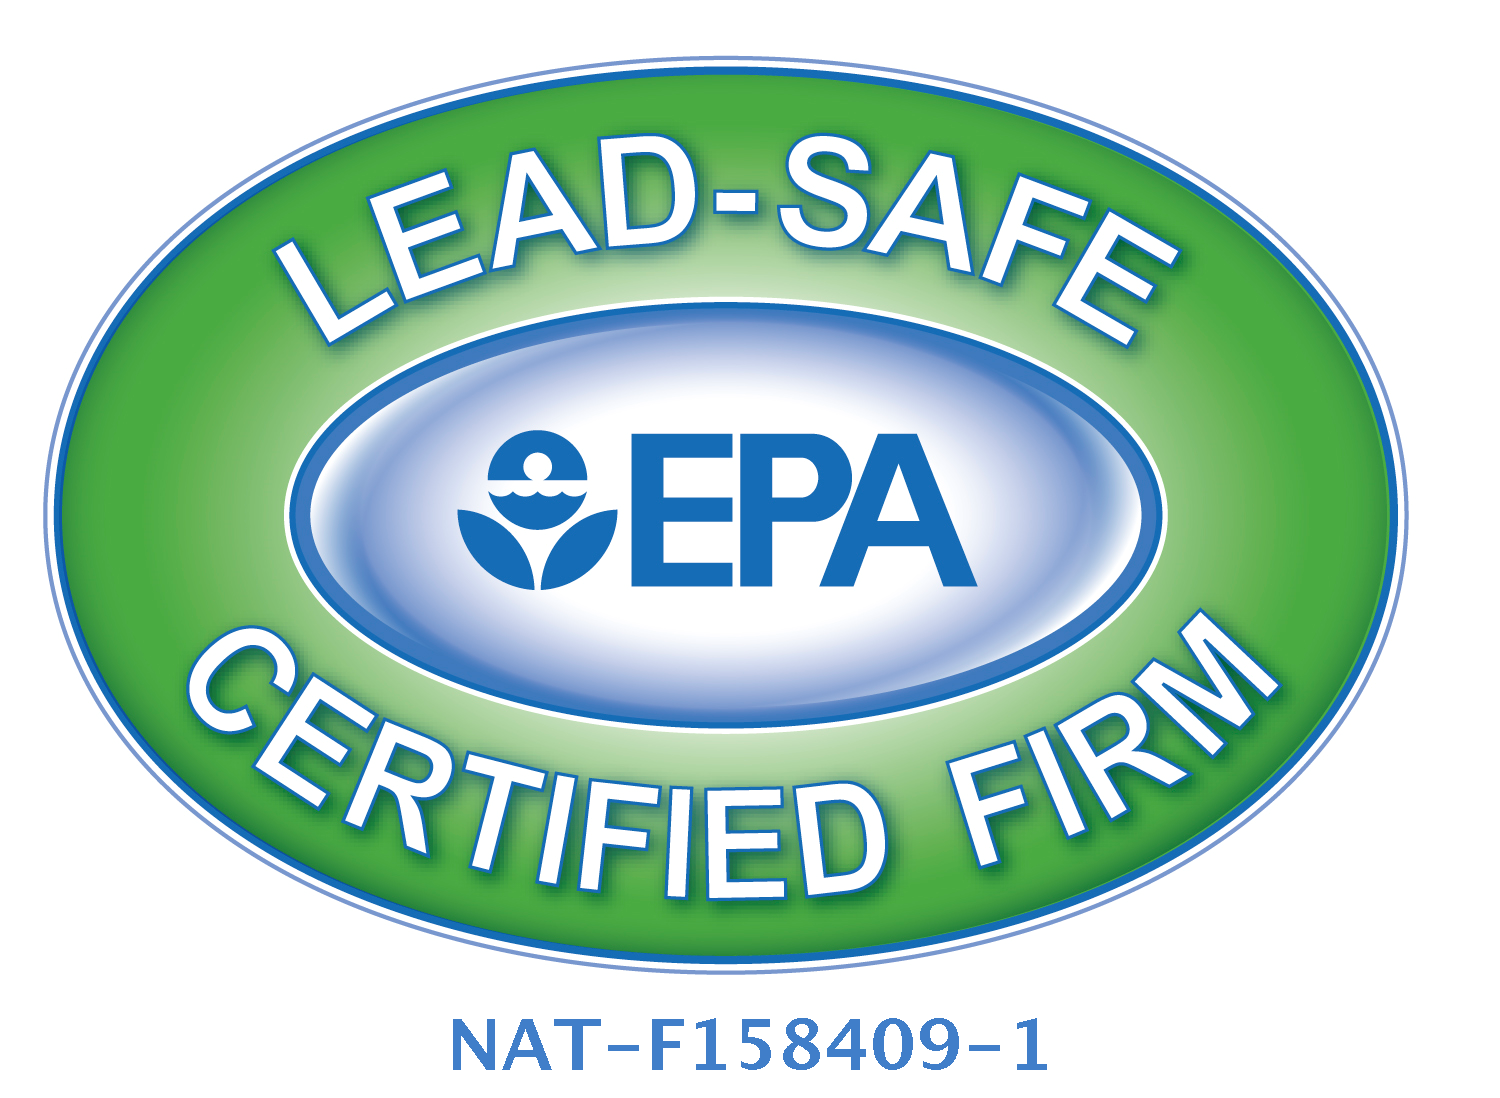 LEAD-SAFE Certified Company